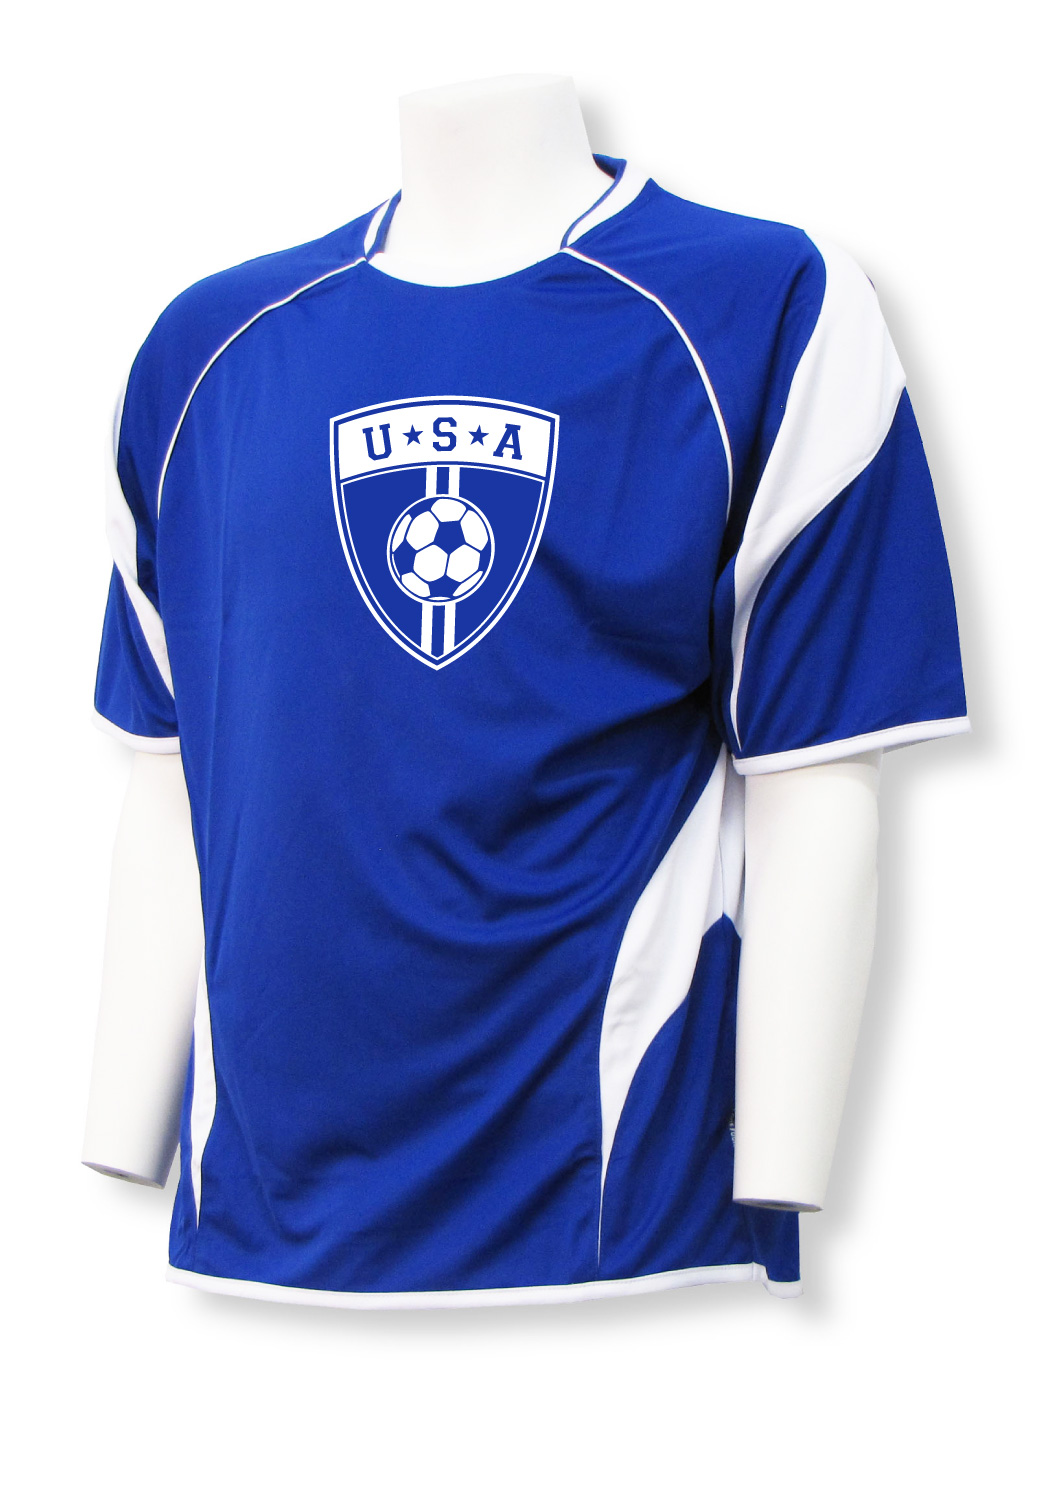 USA Soccer jersey in royal/white